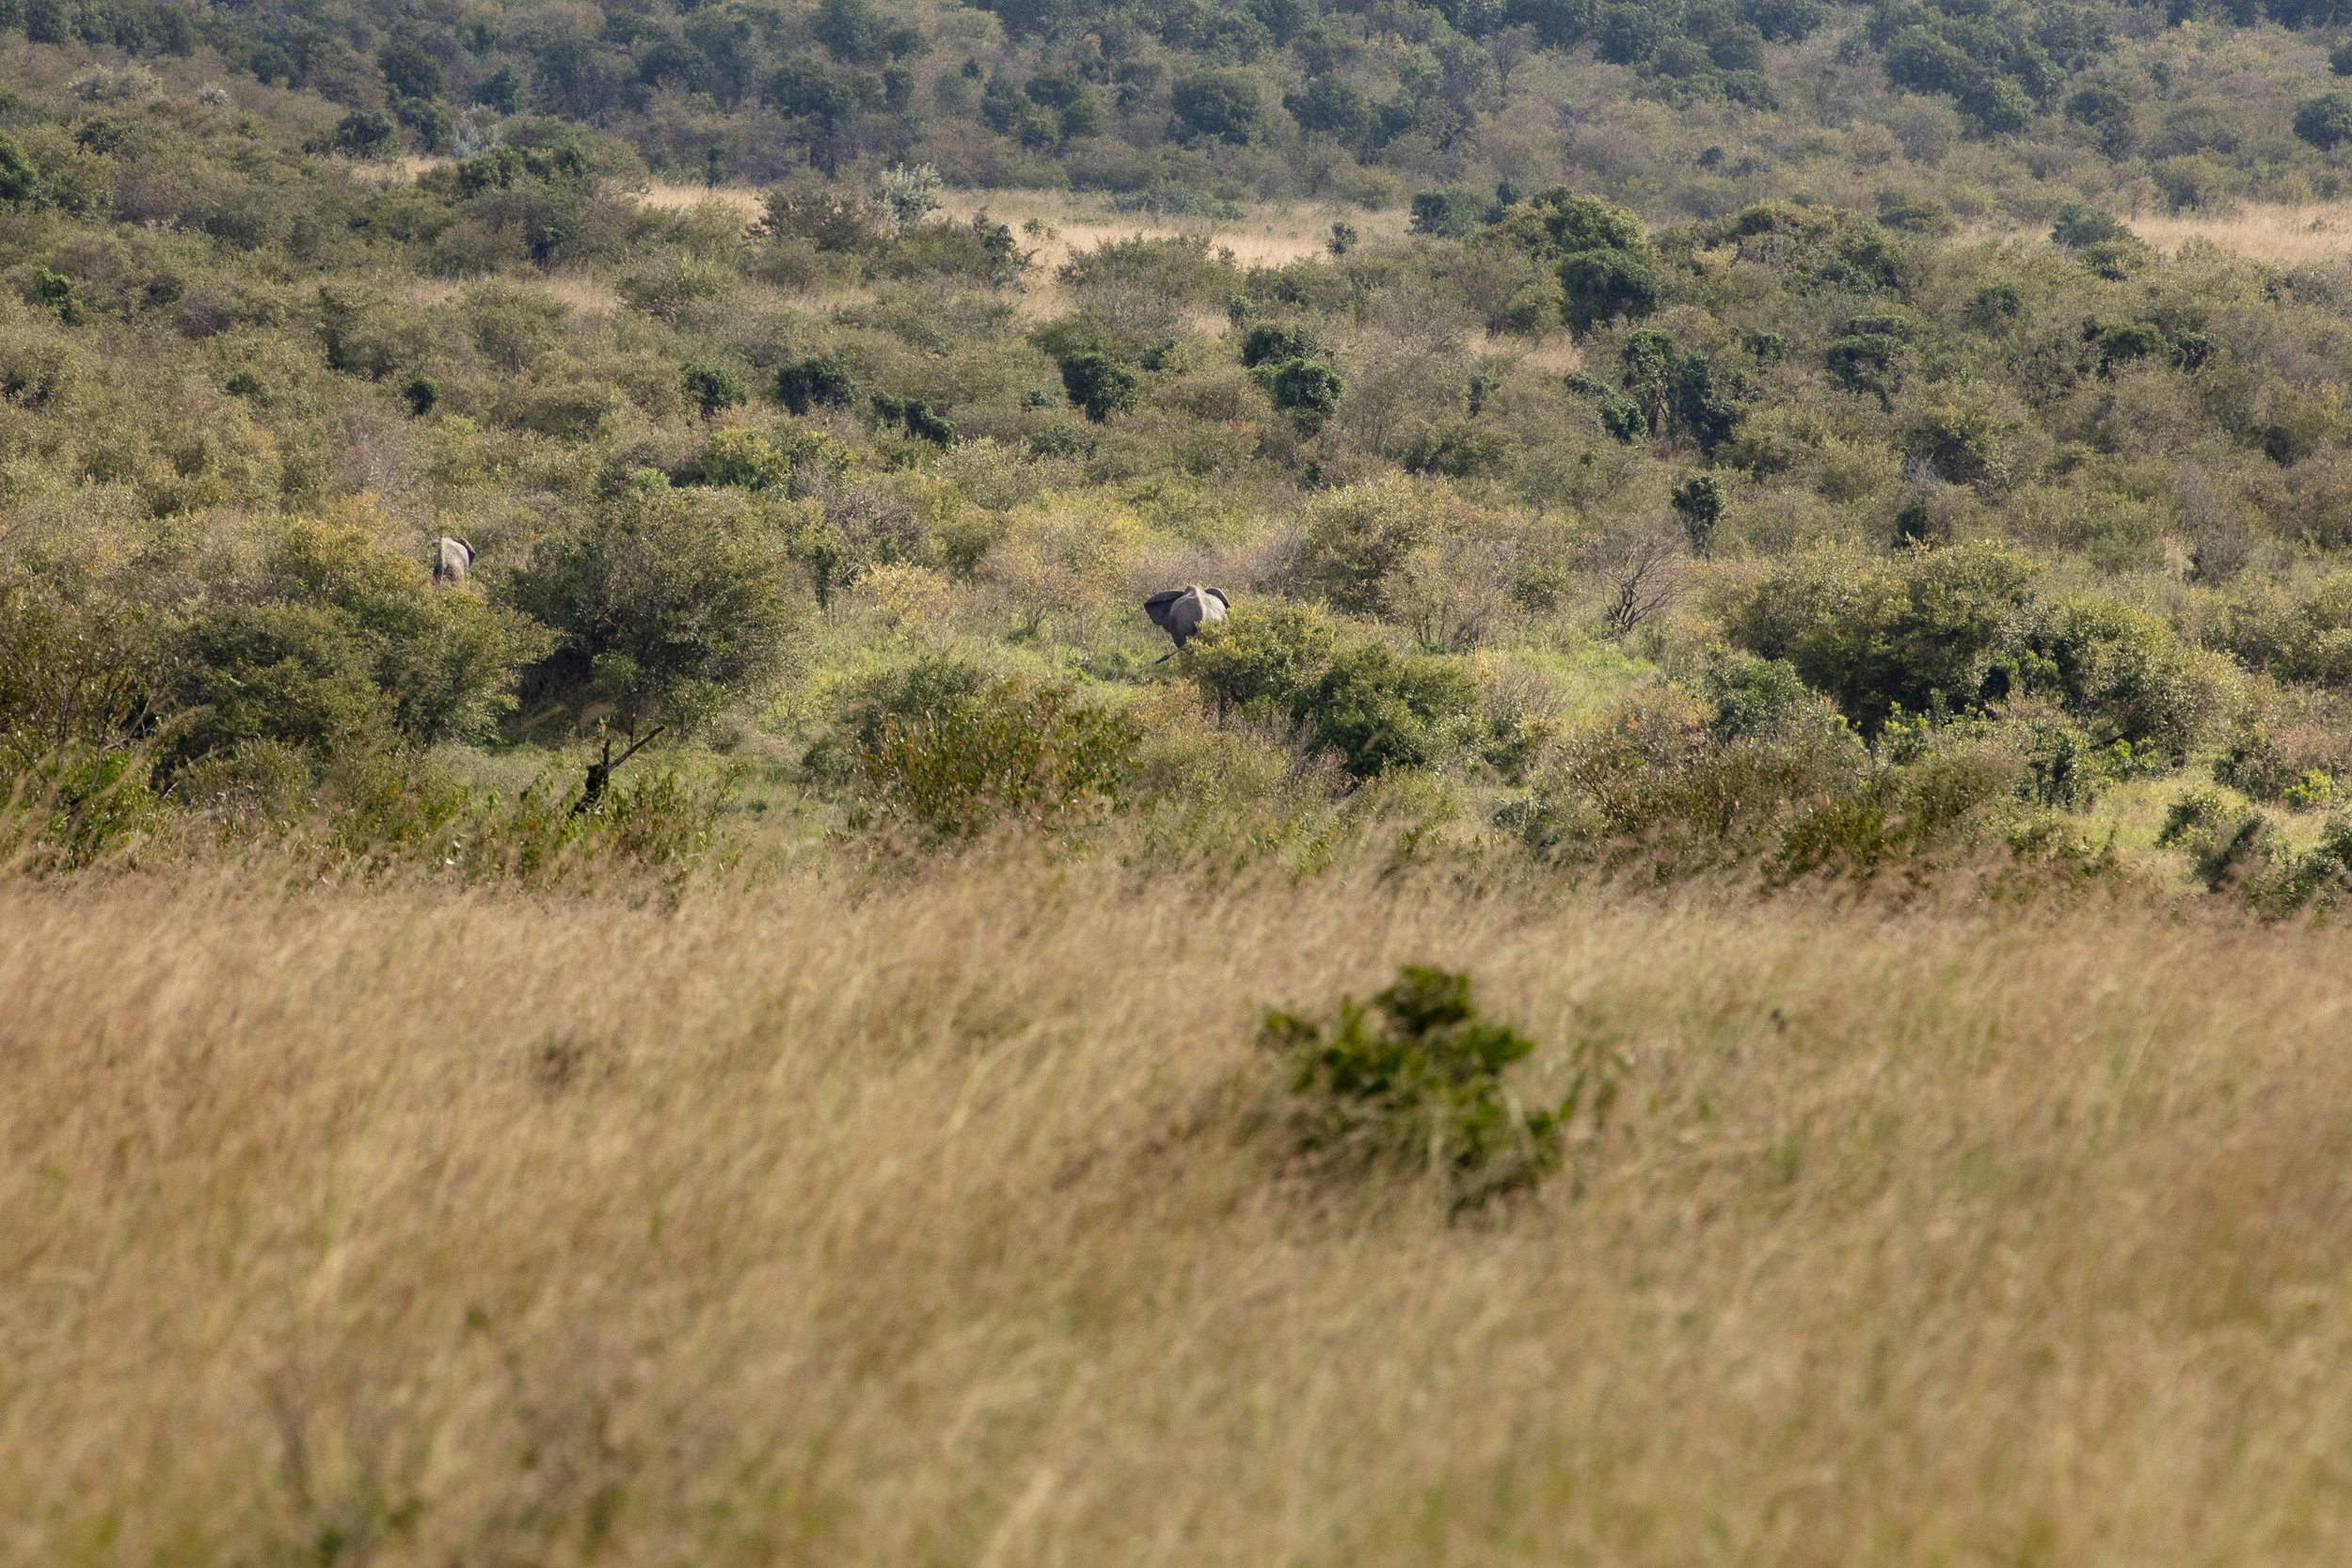 African Adventure - 23 July '18 - From the Loita Hills Maasai Village to the Masai Mara National Reserve - 057.JPG